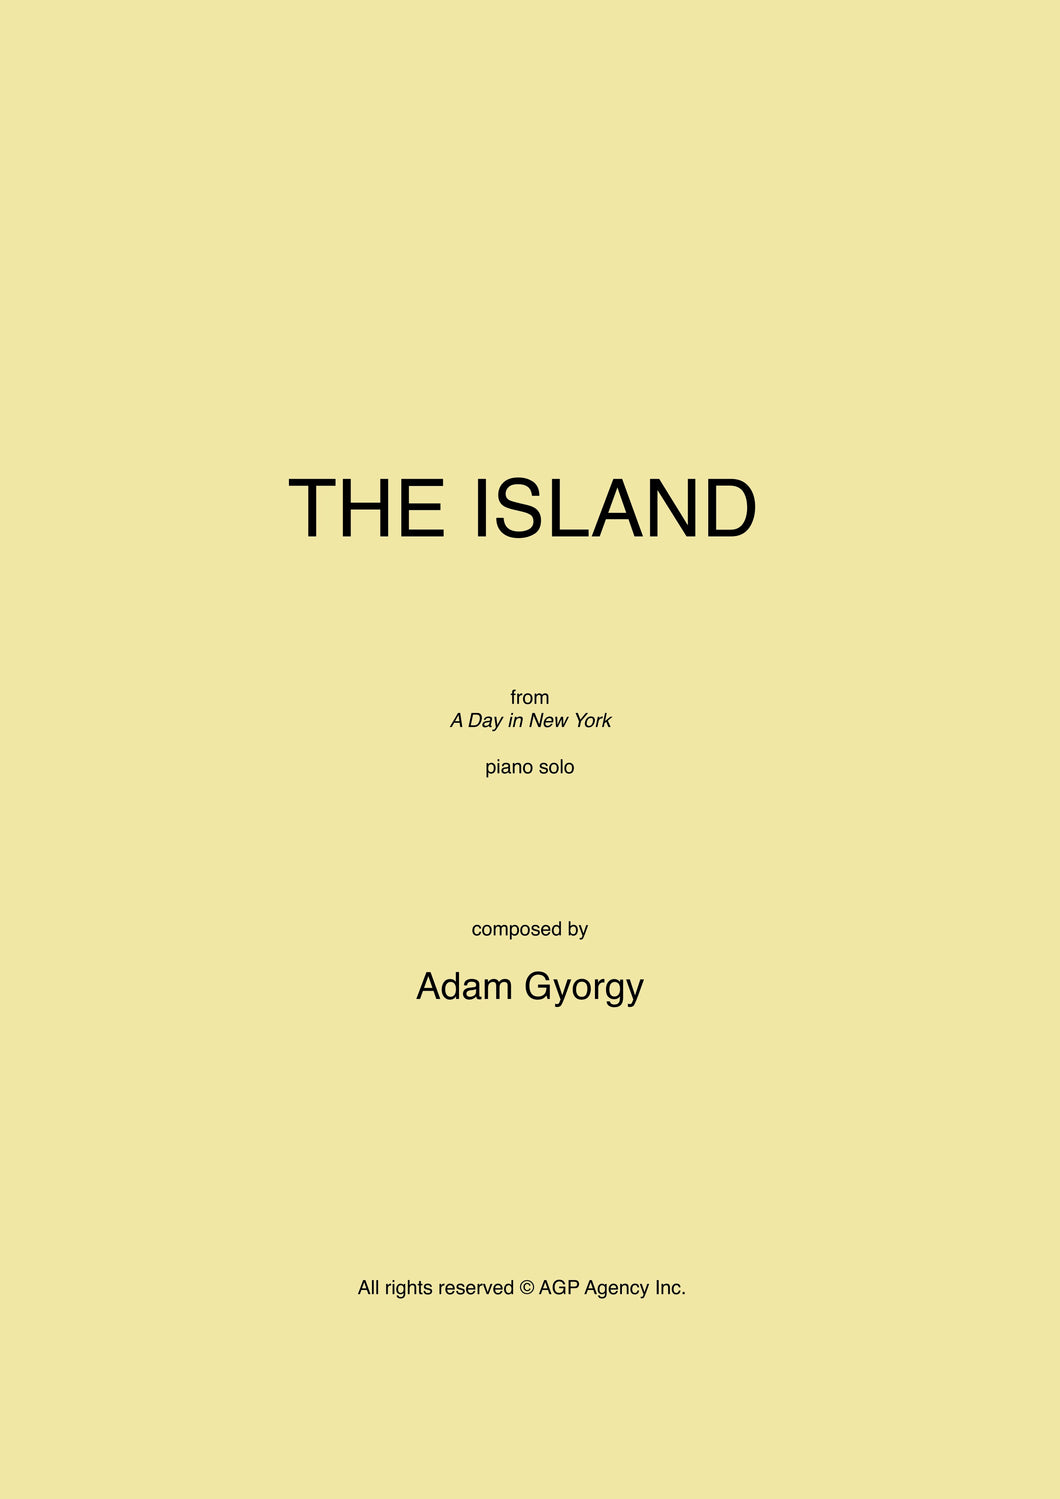 The Island - Sheet music